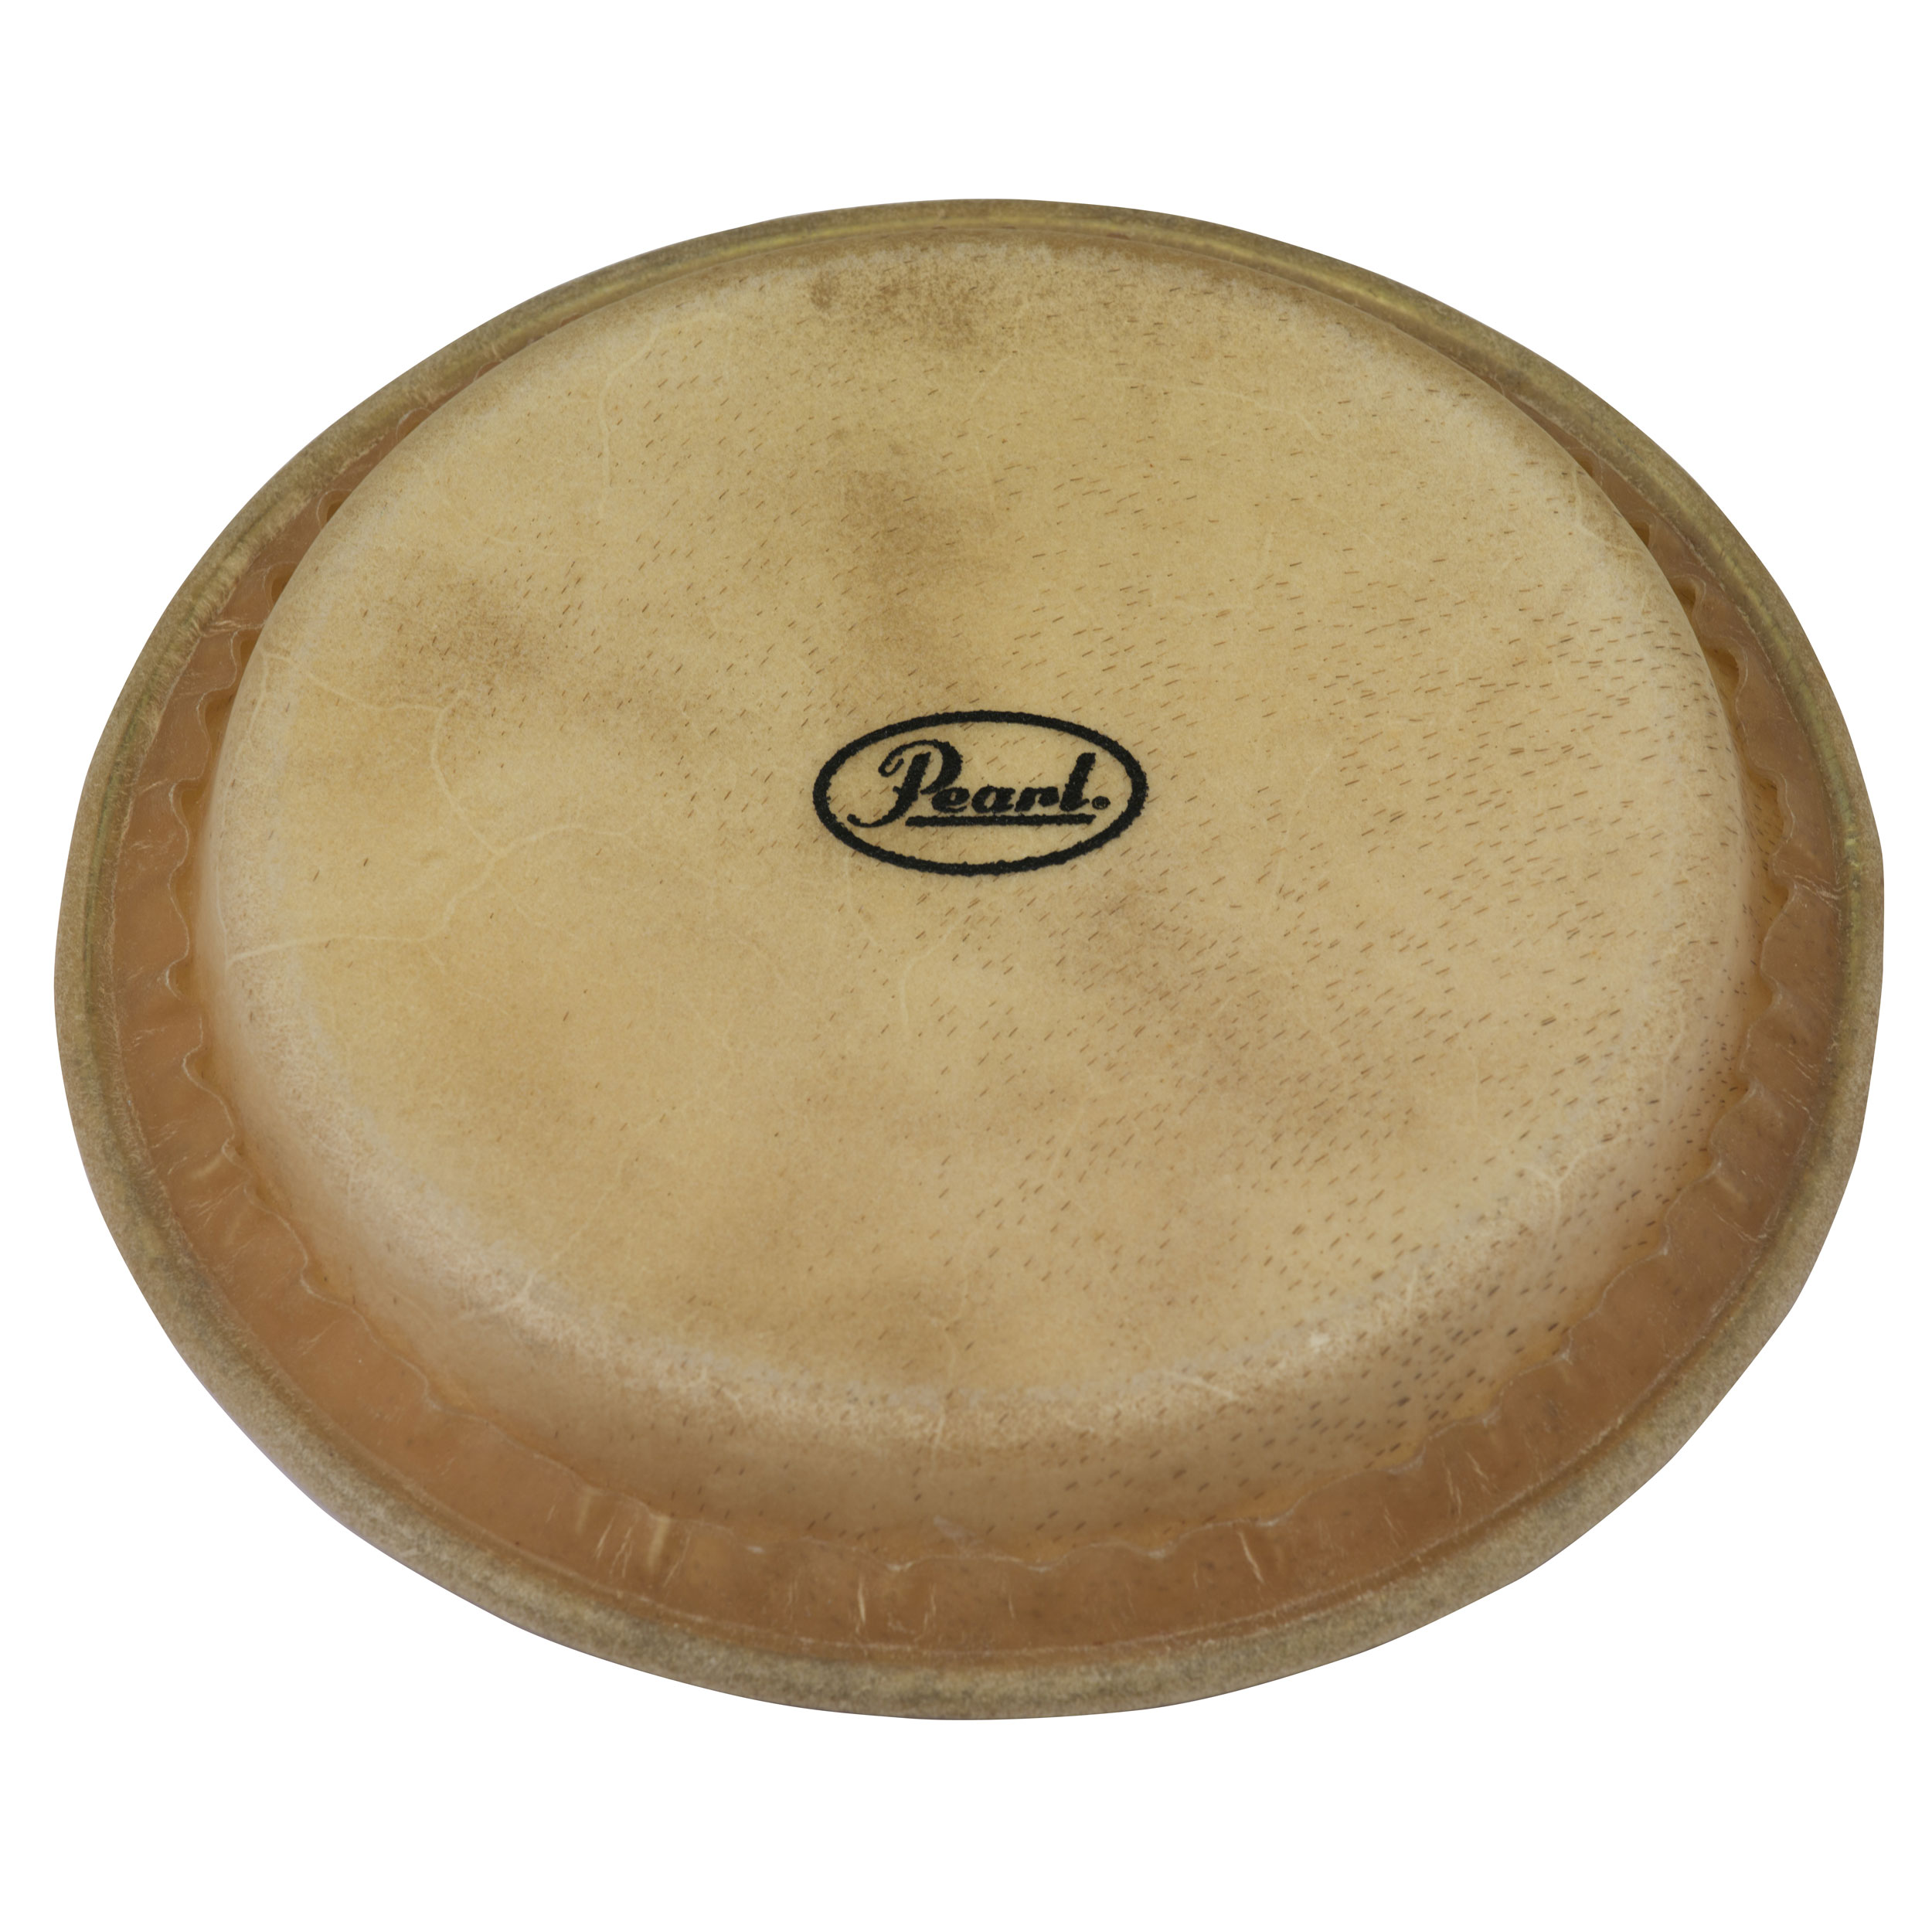 "Pearl 11"" Elite Oak Rawhide Conga Drum Head"